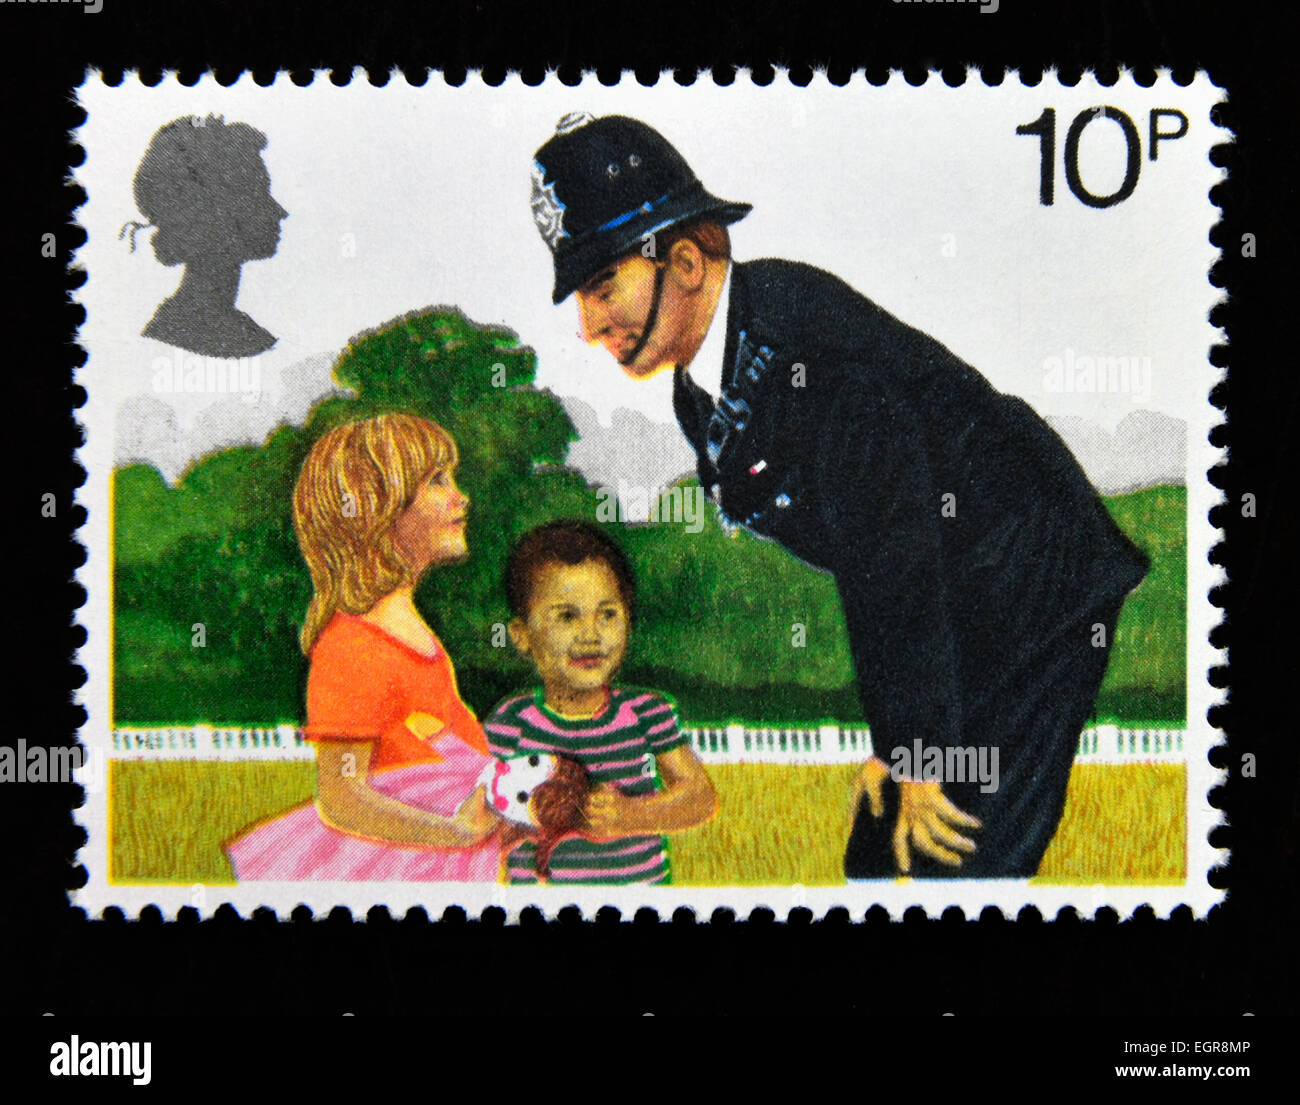 1829 police stock photos & 1829 police stock images - alamy